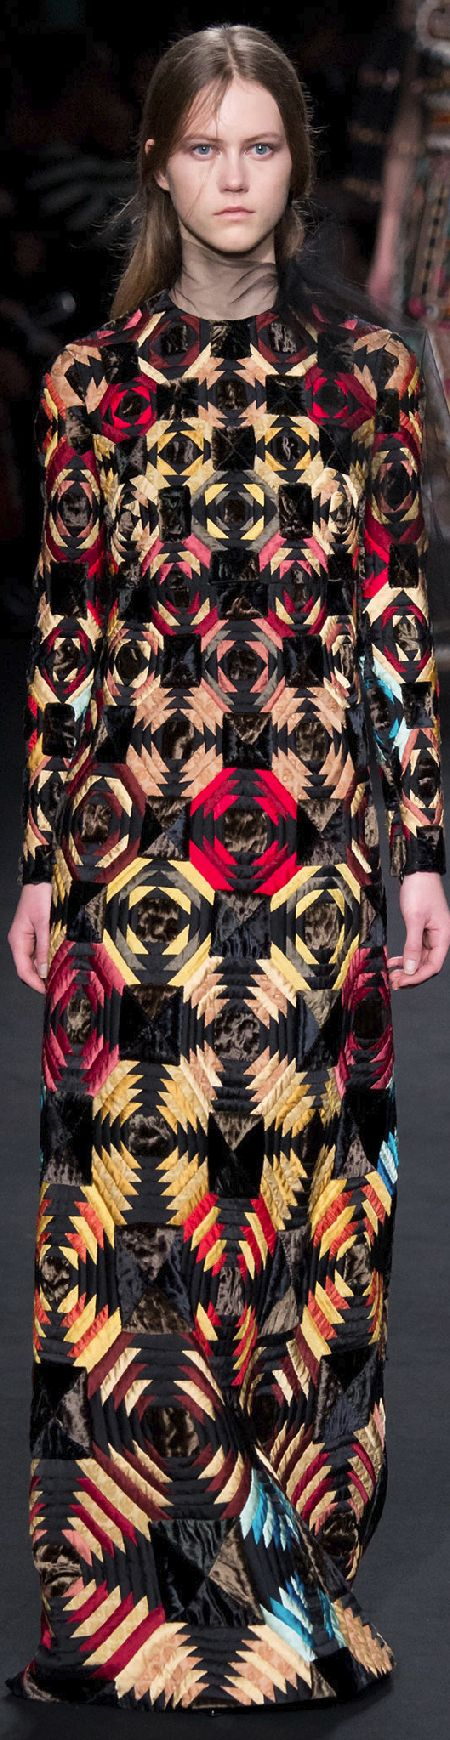 Fall 2015 Ready-to-Wear Valentino,  She doesn't look very happy to be wearing her pineapple frock...